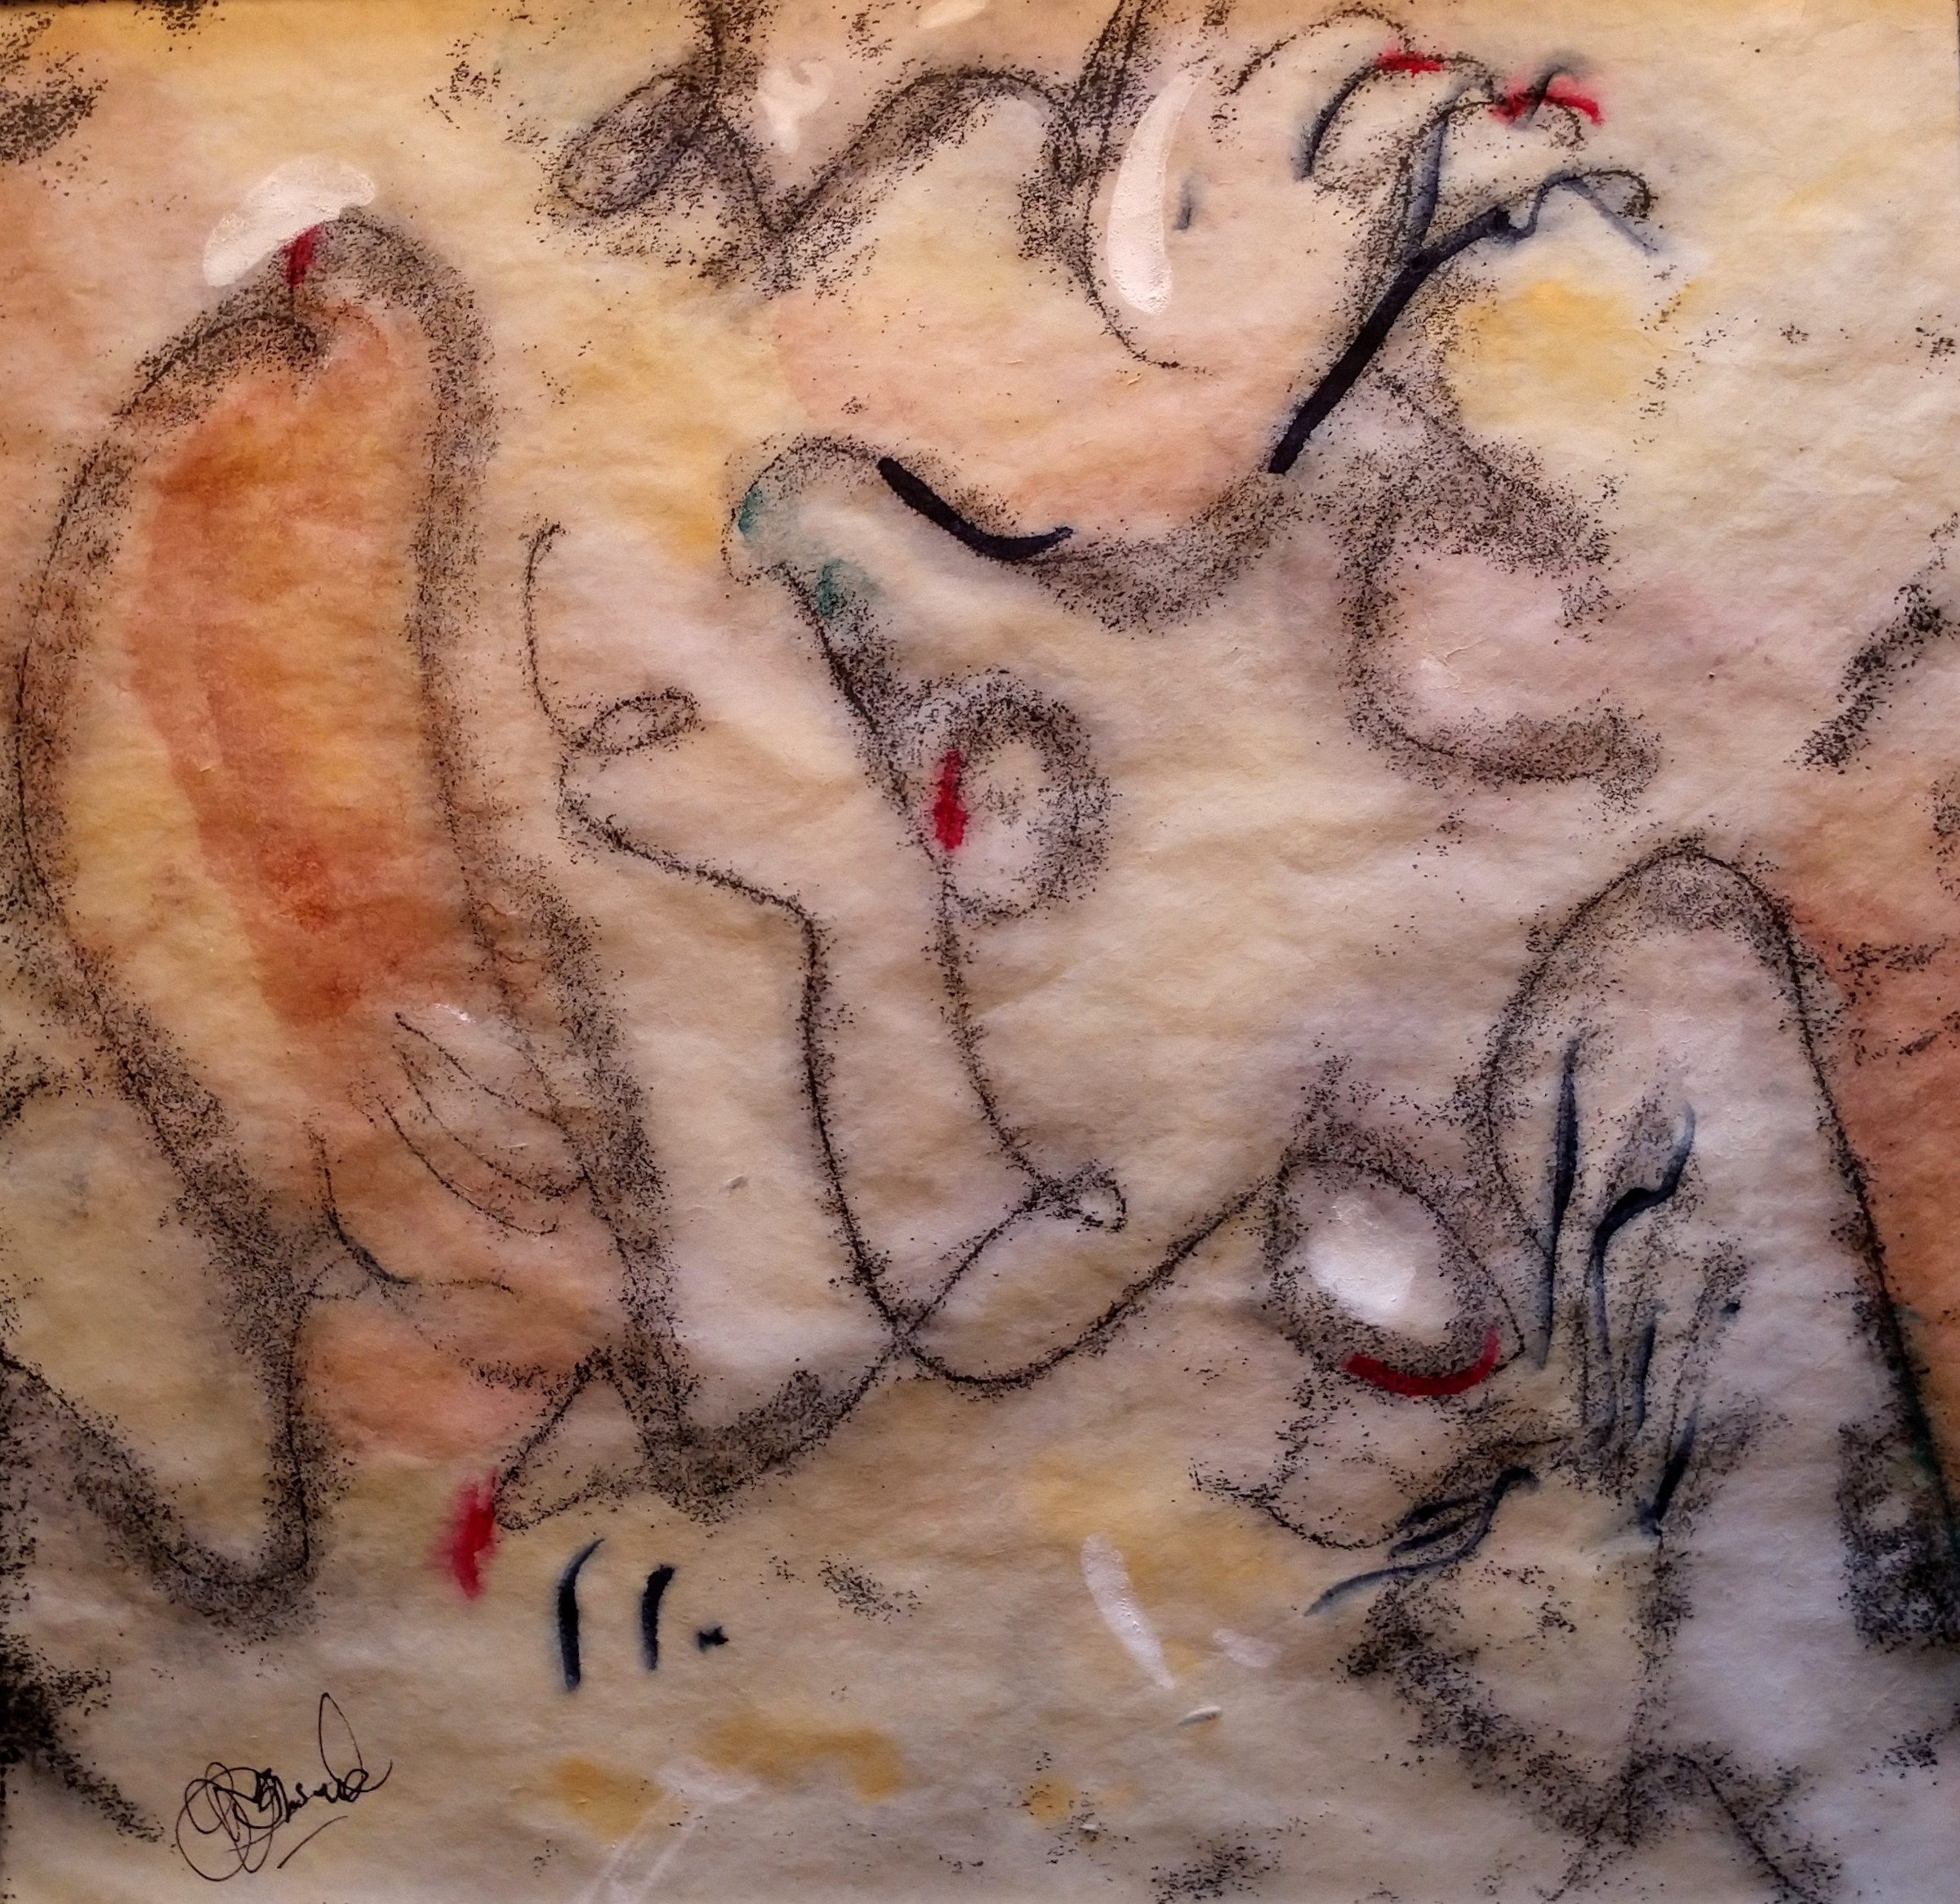 Earth Astract artwork by Roberta Ann Busard - art listed for sale on Artplode